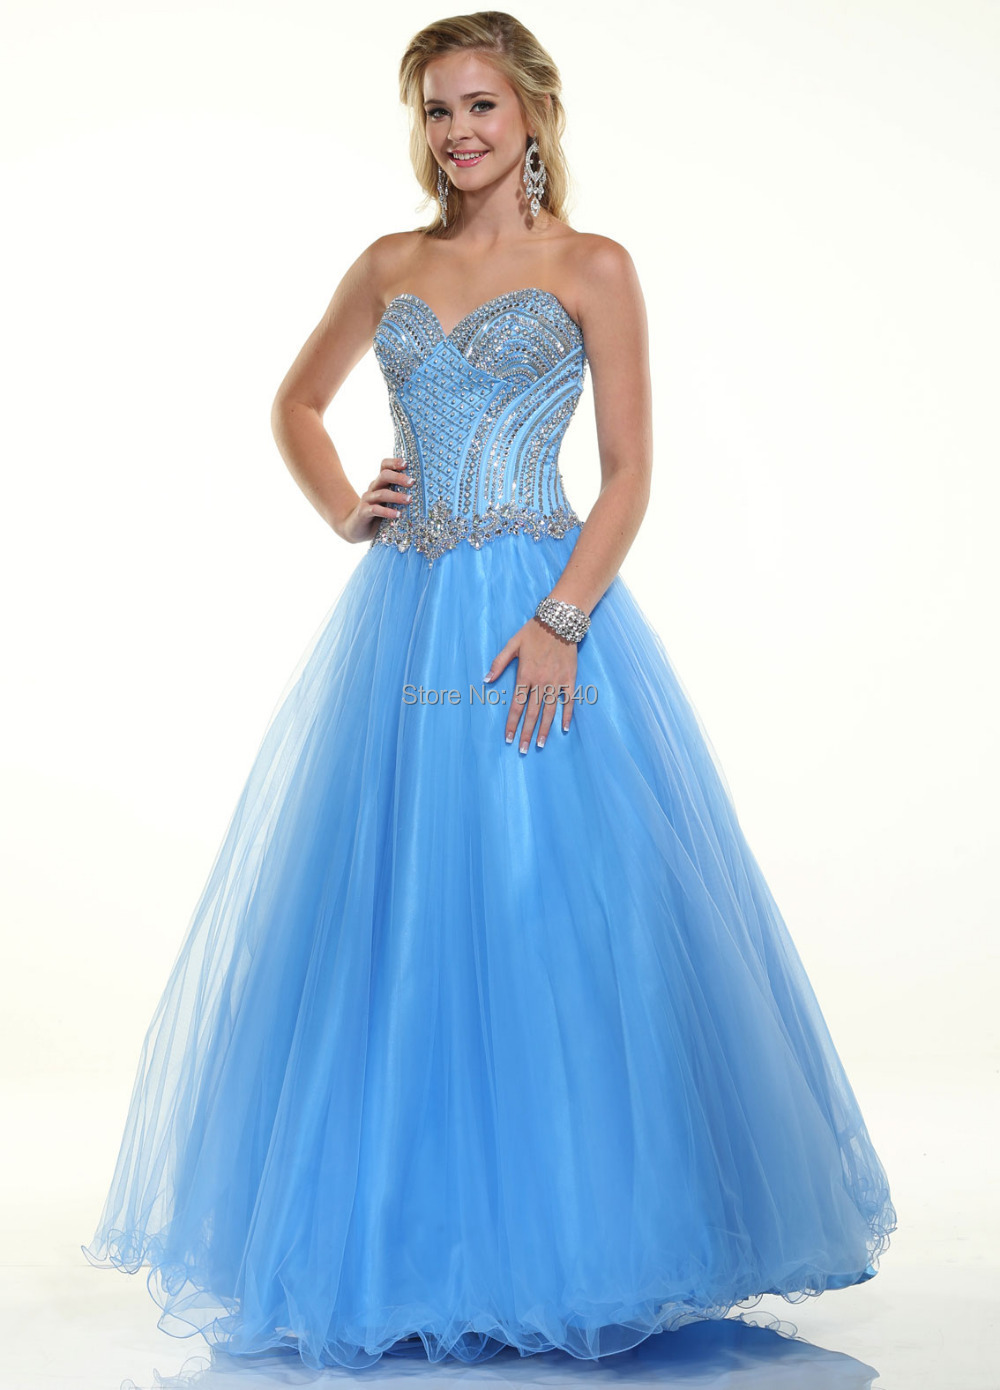 Crazy prom dresses cocktail dresses 2016 for Plus size wedding dresses cleveland ohio